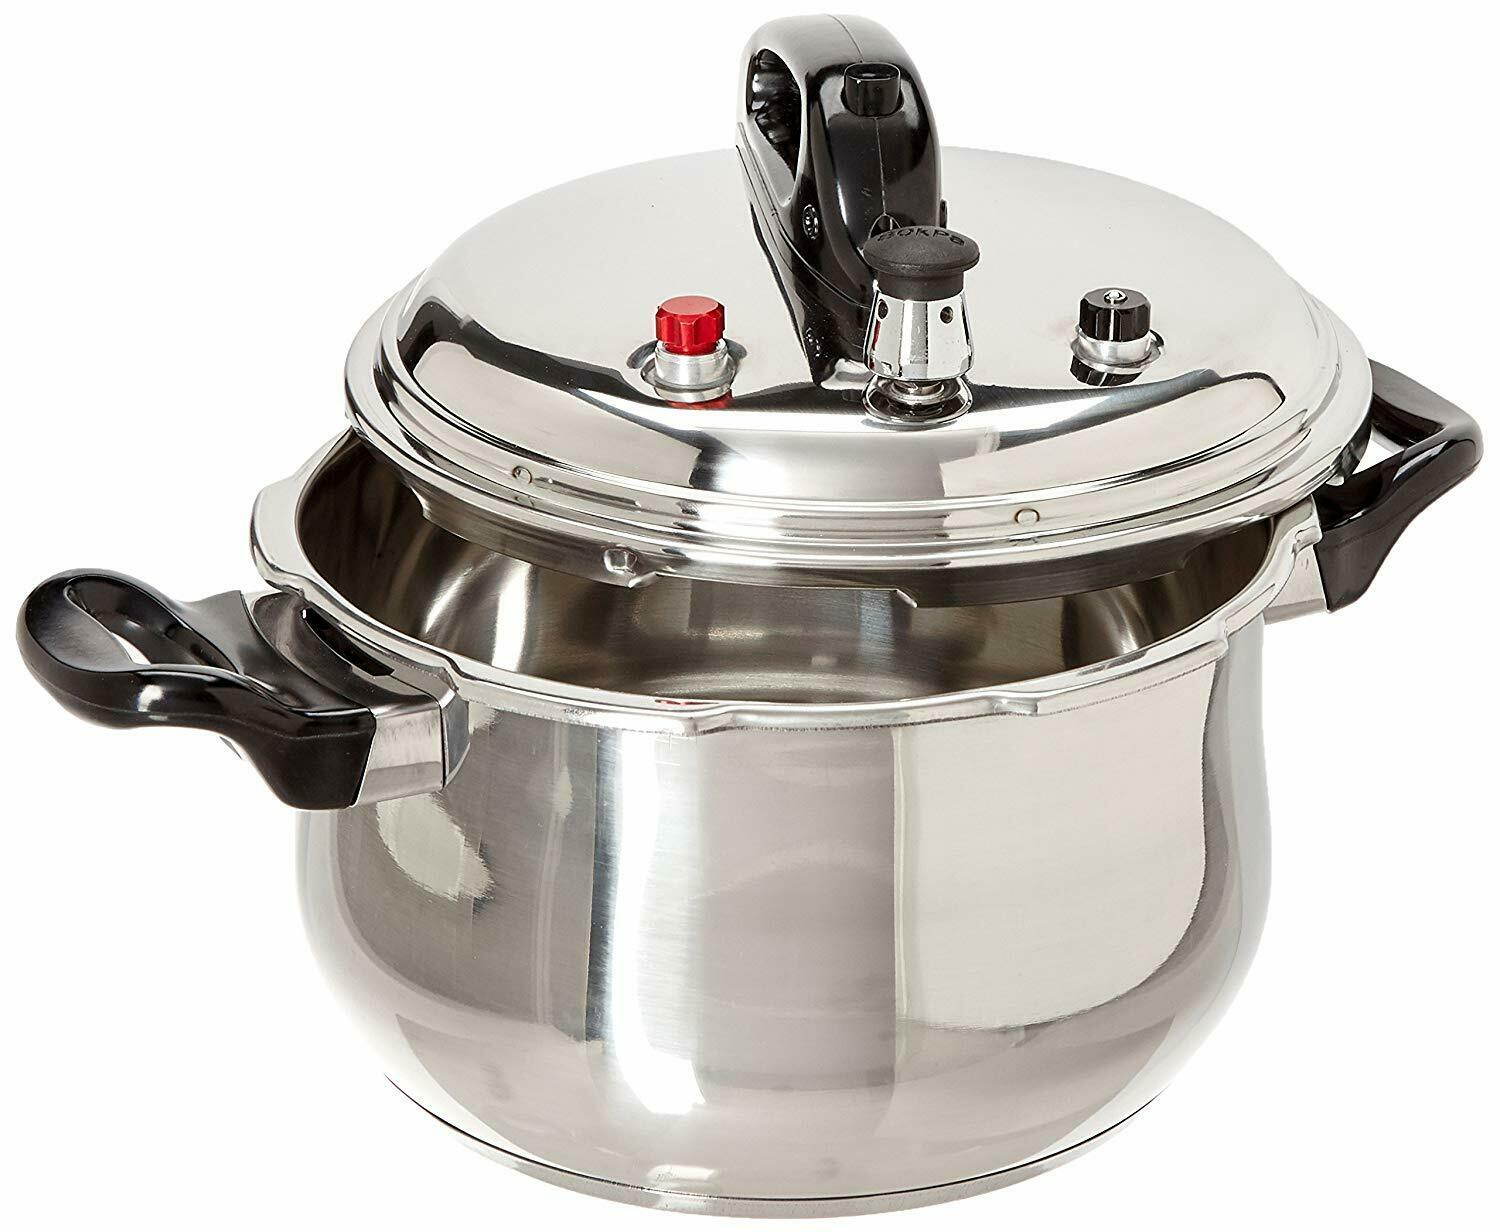 Stainless Steel Pressure Cooker With 6 Safety Features,5.3/7